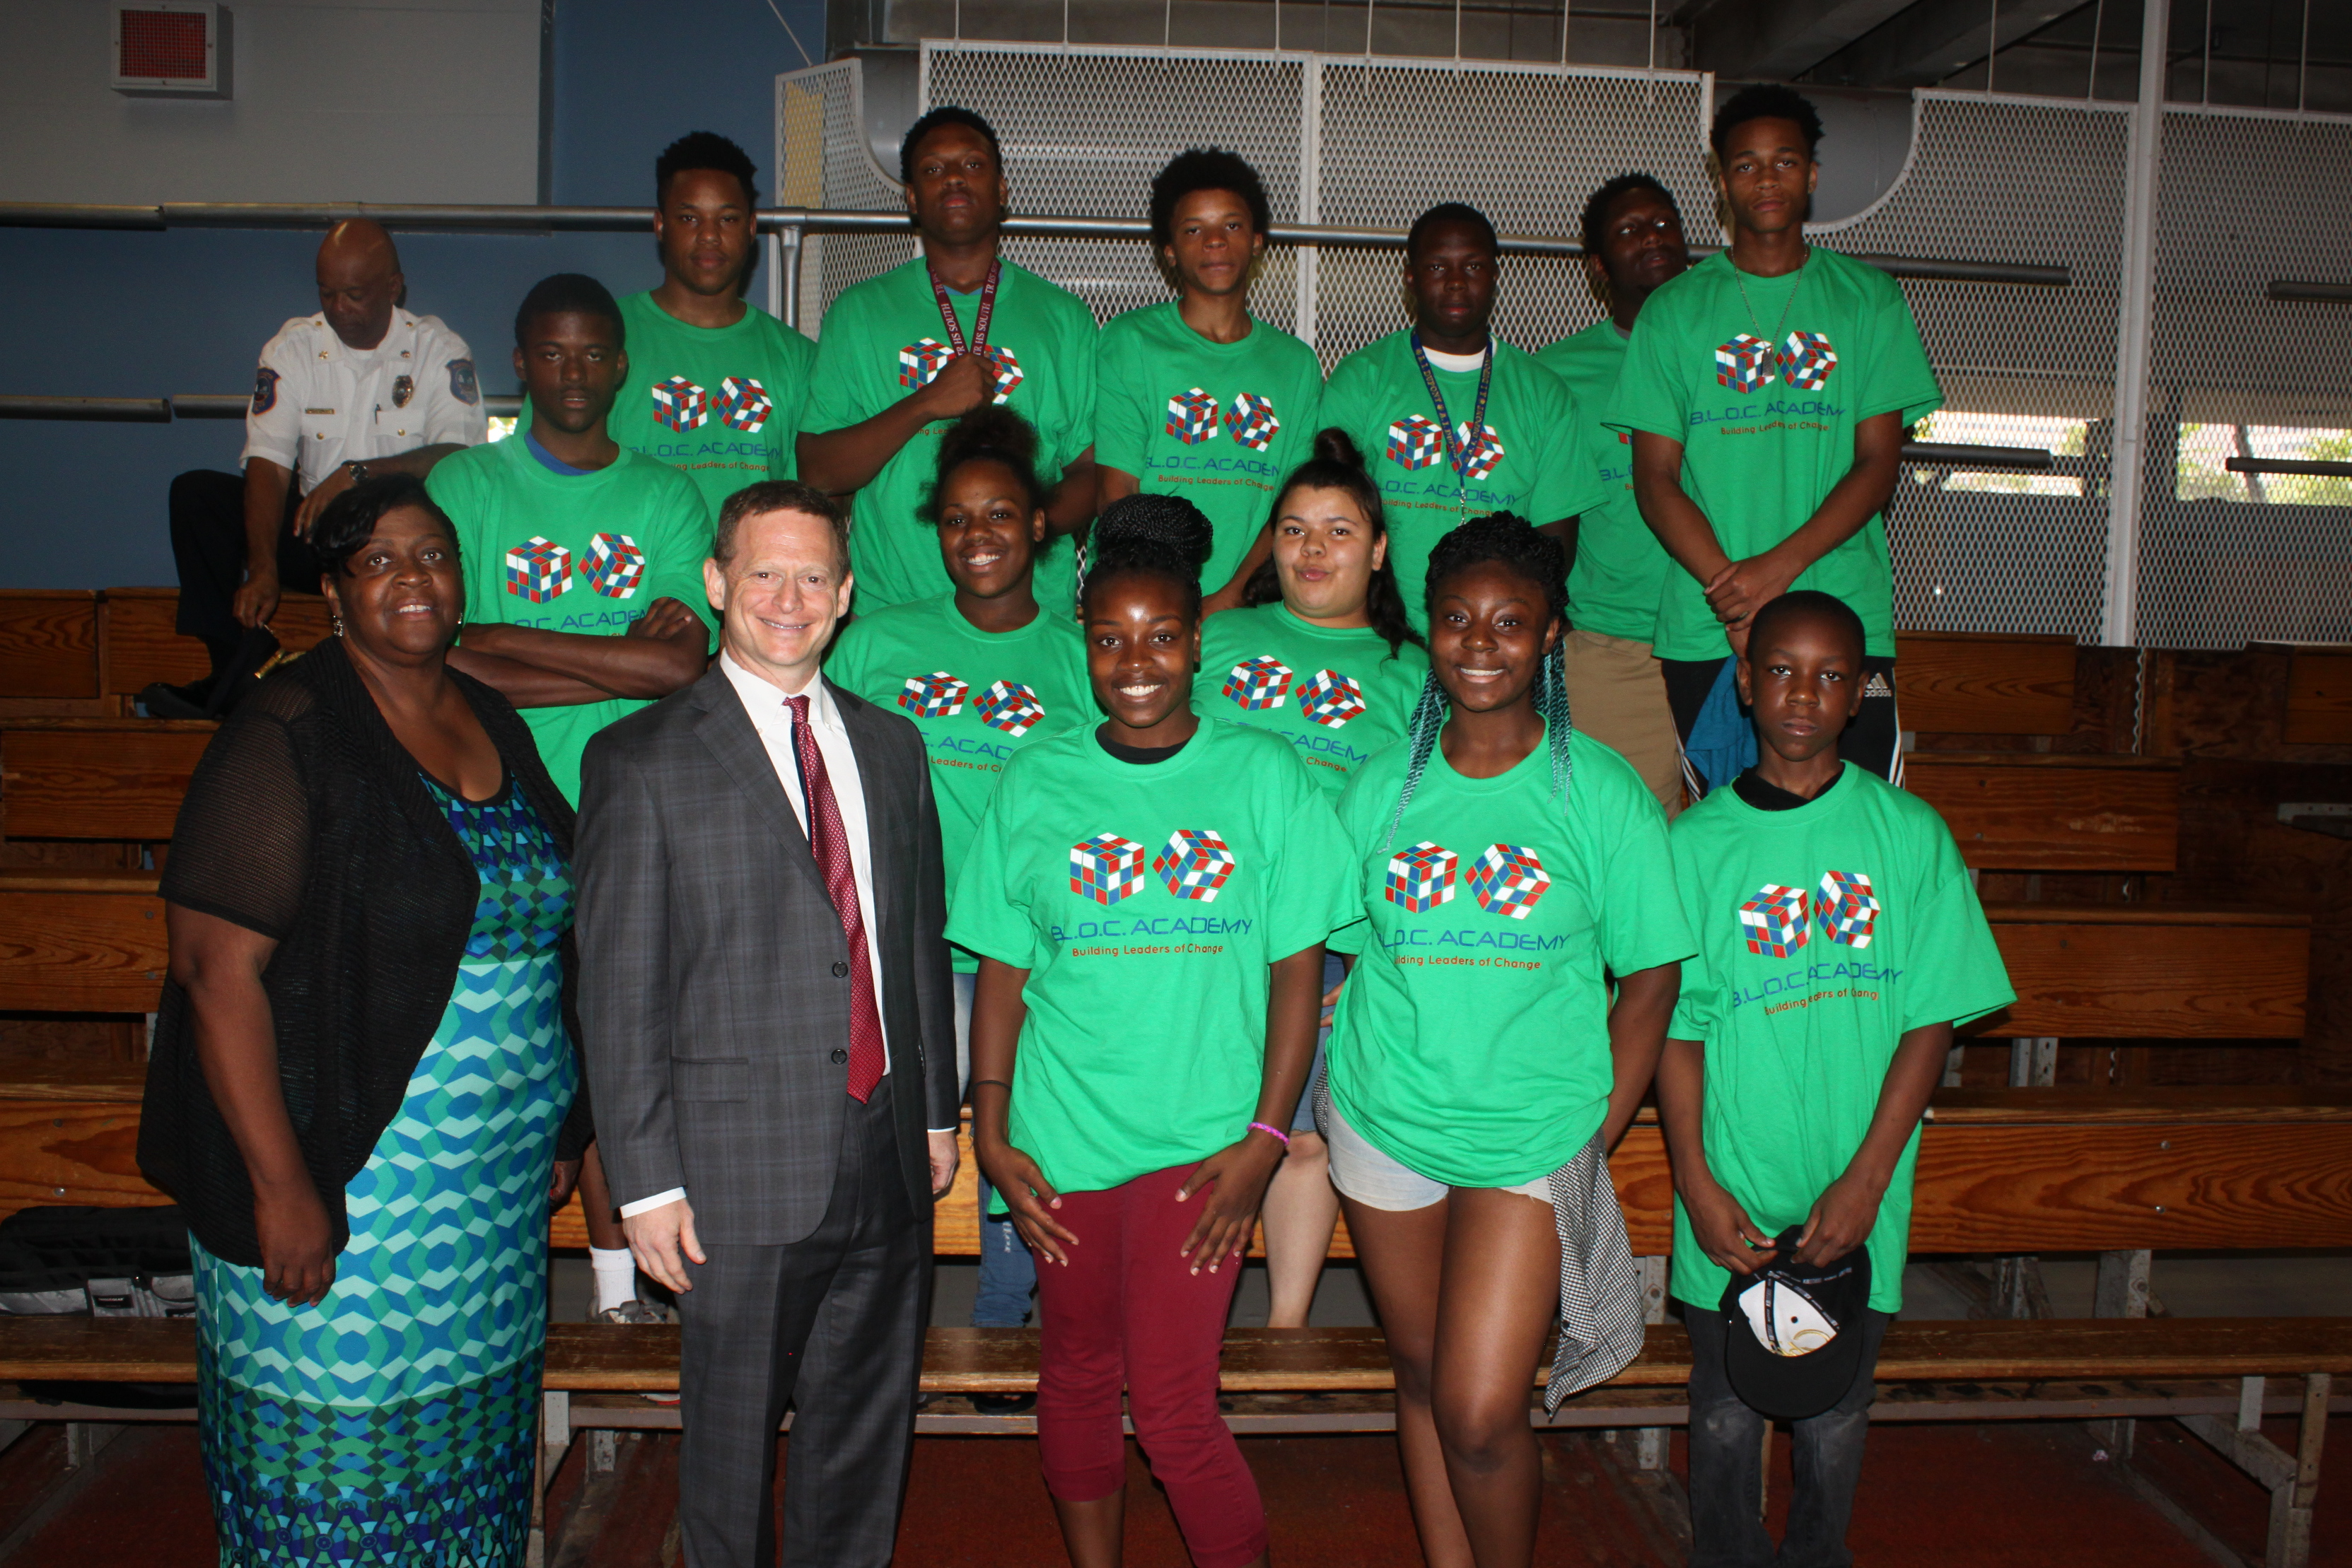 Attorney General Matt Denn with Pastor Lottie Lee Davis and participants of the Be Ready Community Development Corp.